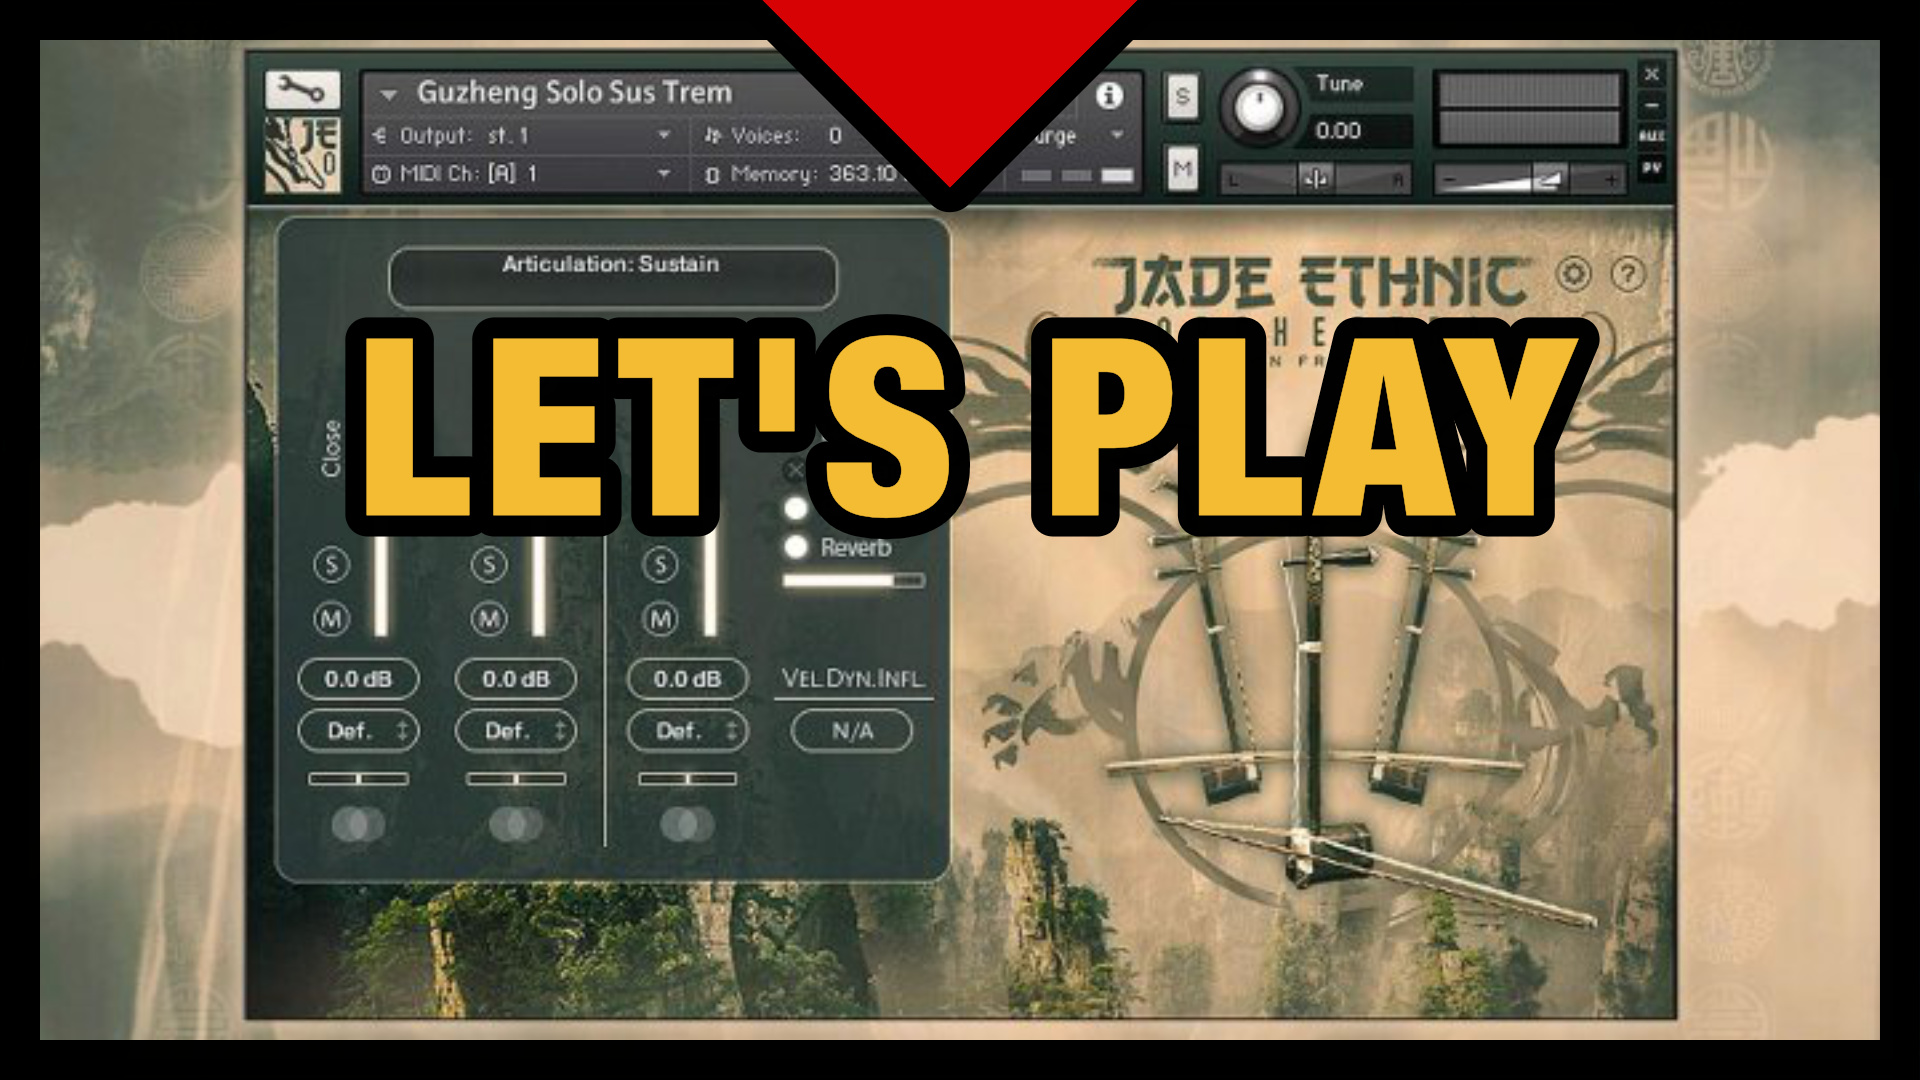 Let's Play Jade Ethnic Orchestral by Strezov Sampling